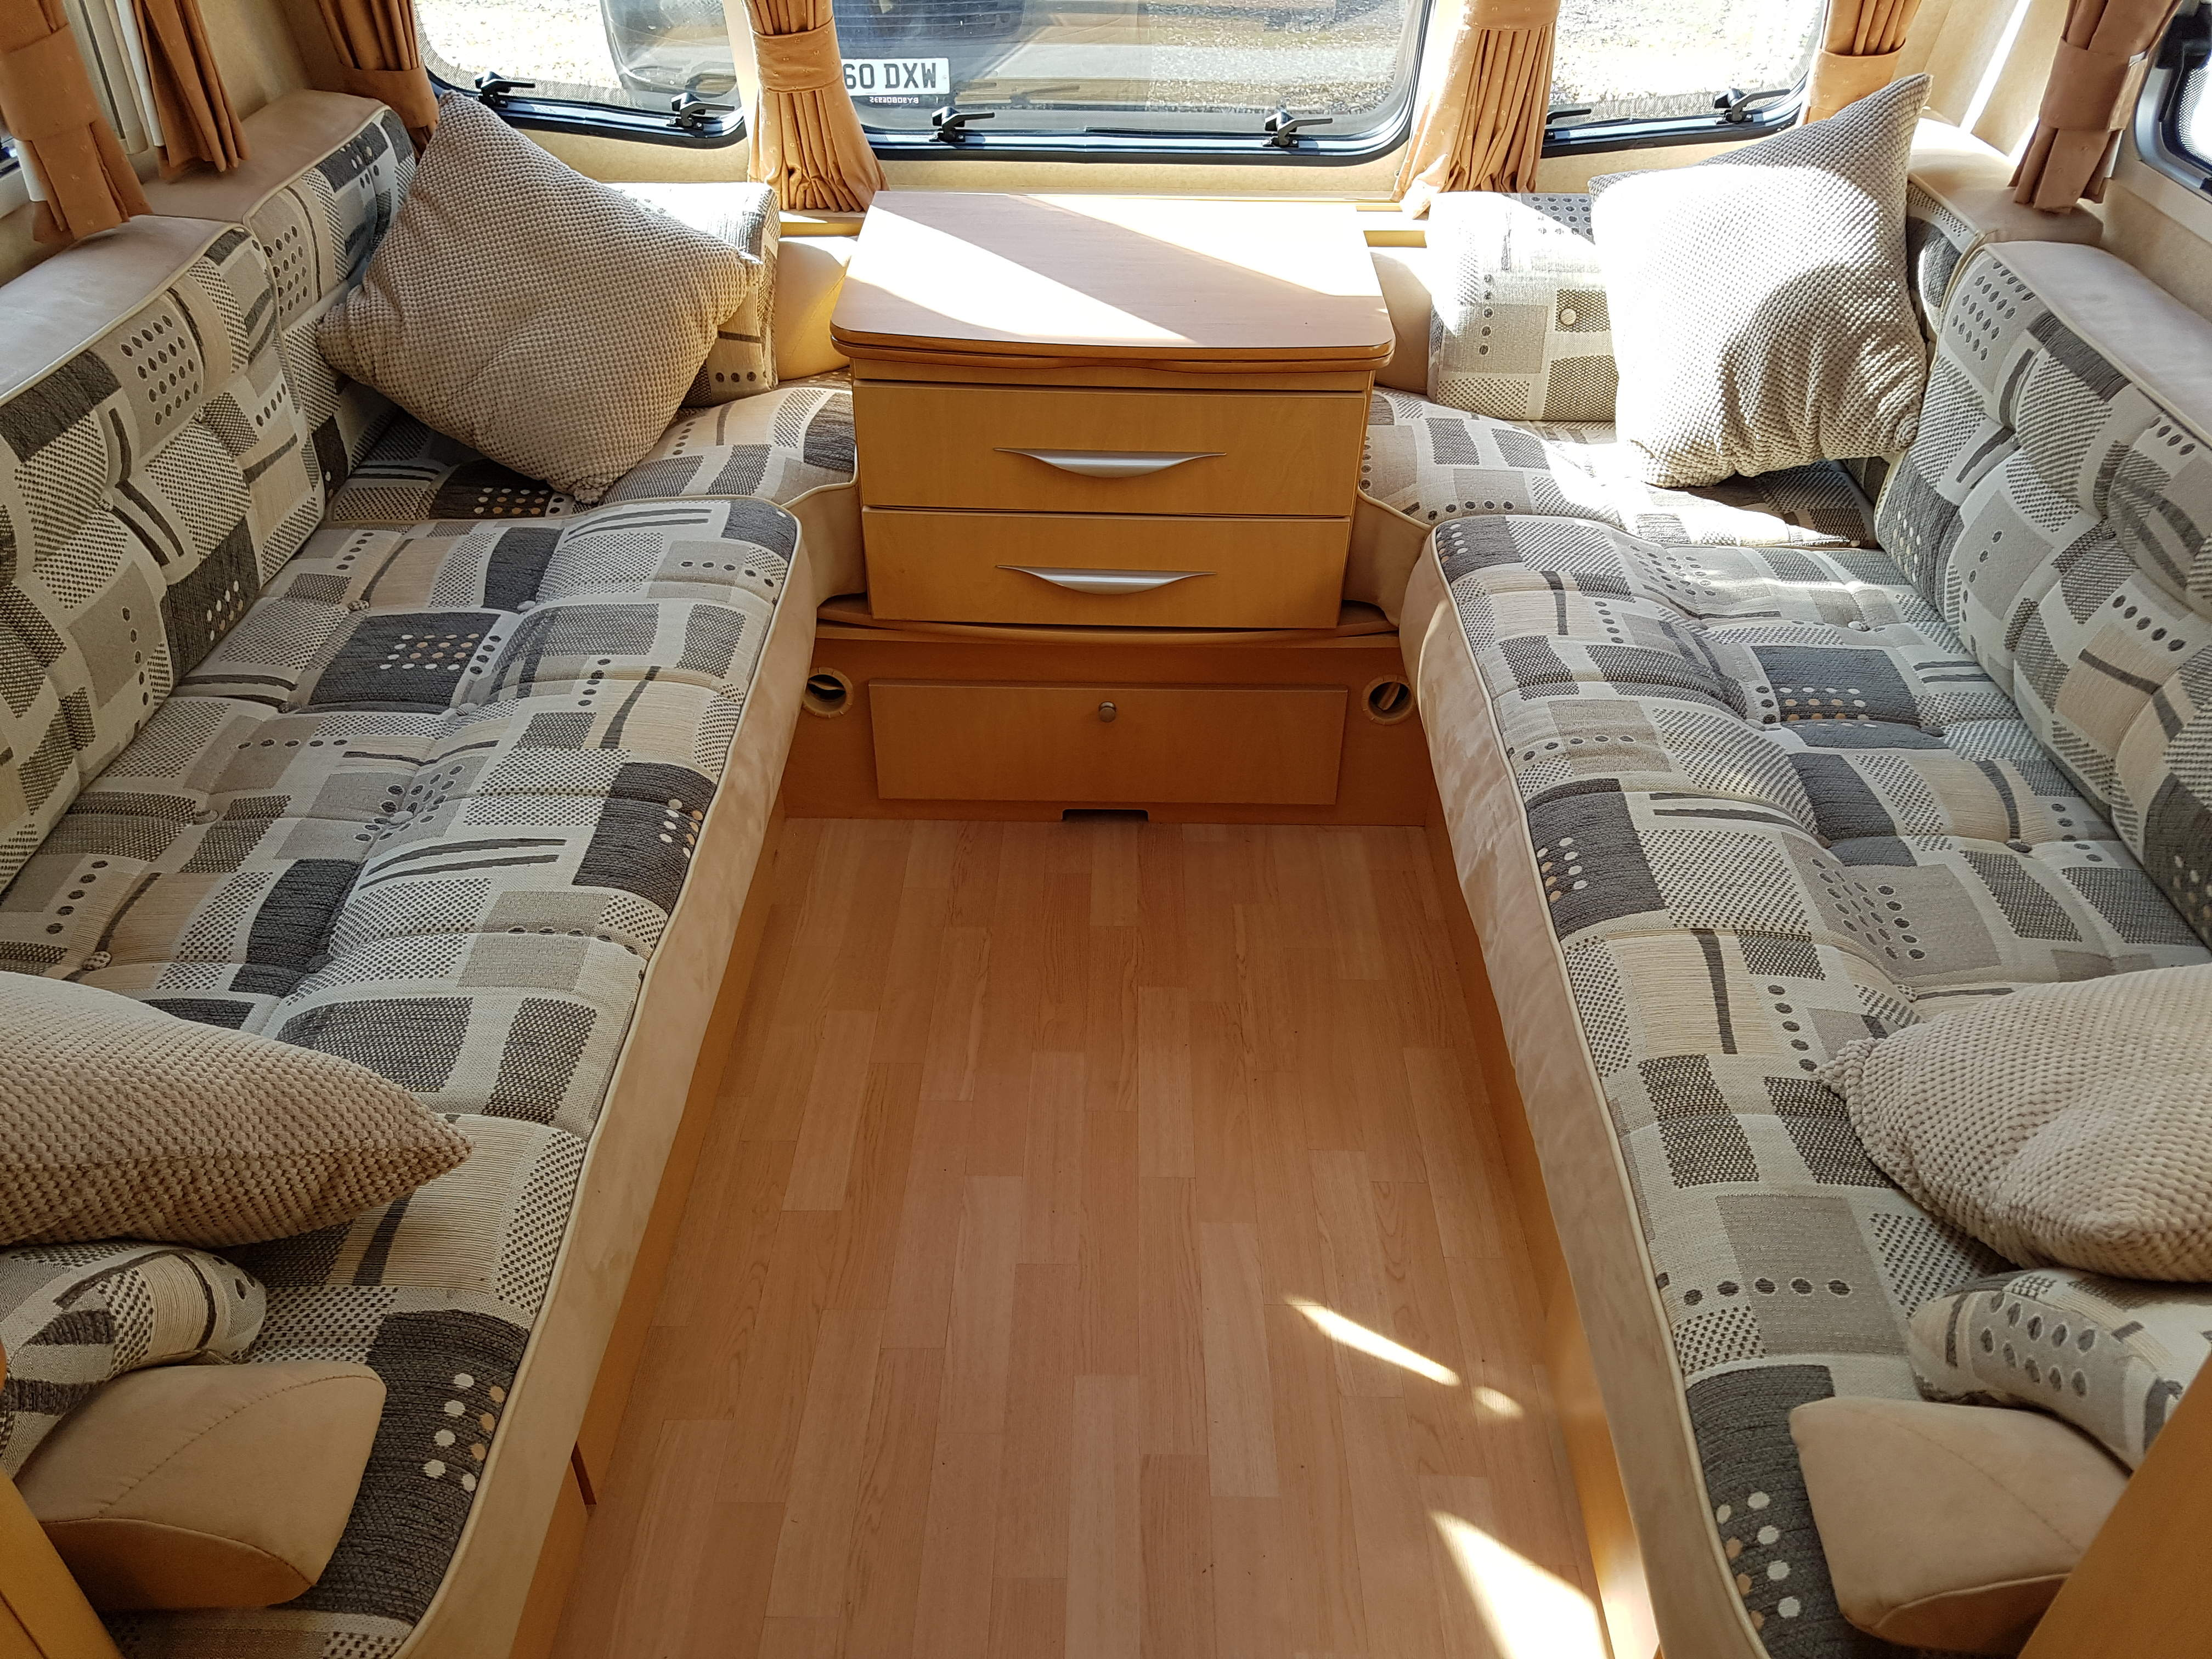 2009 Bailey Senator Vermont 2 Berth End Washroom Caravan with Motor Mover, Porch Awning